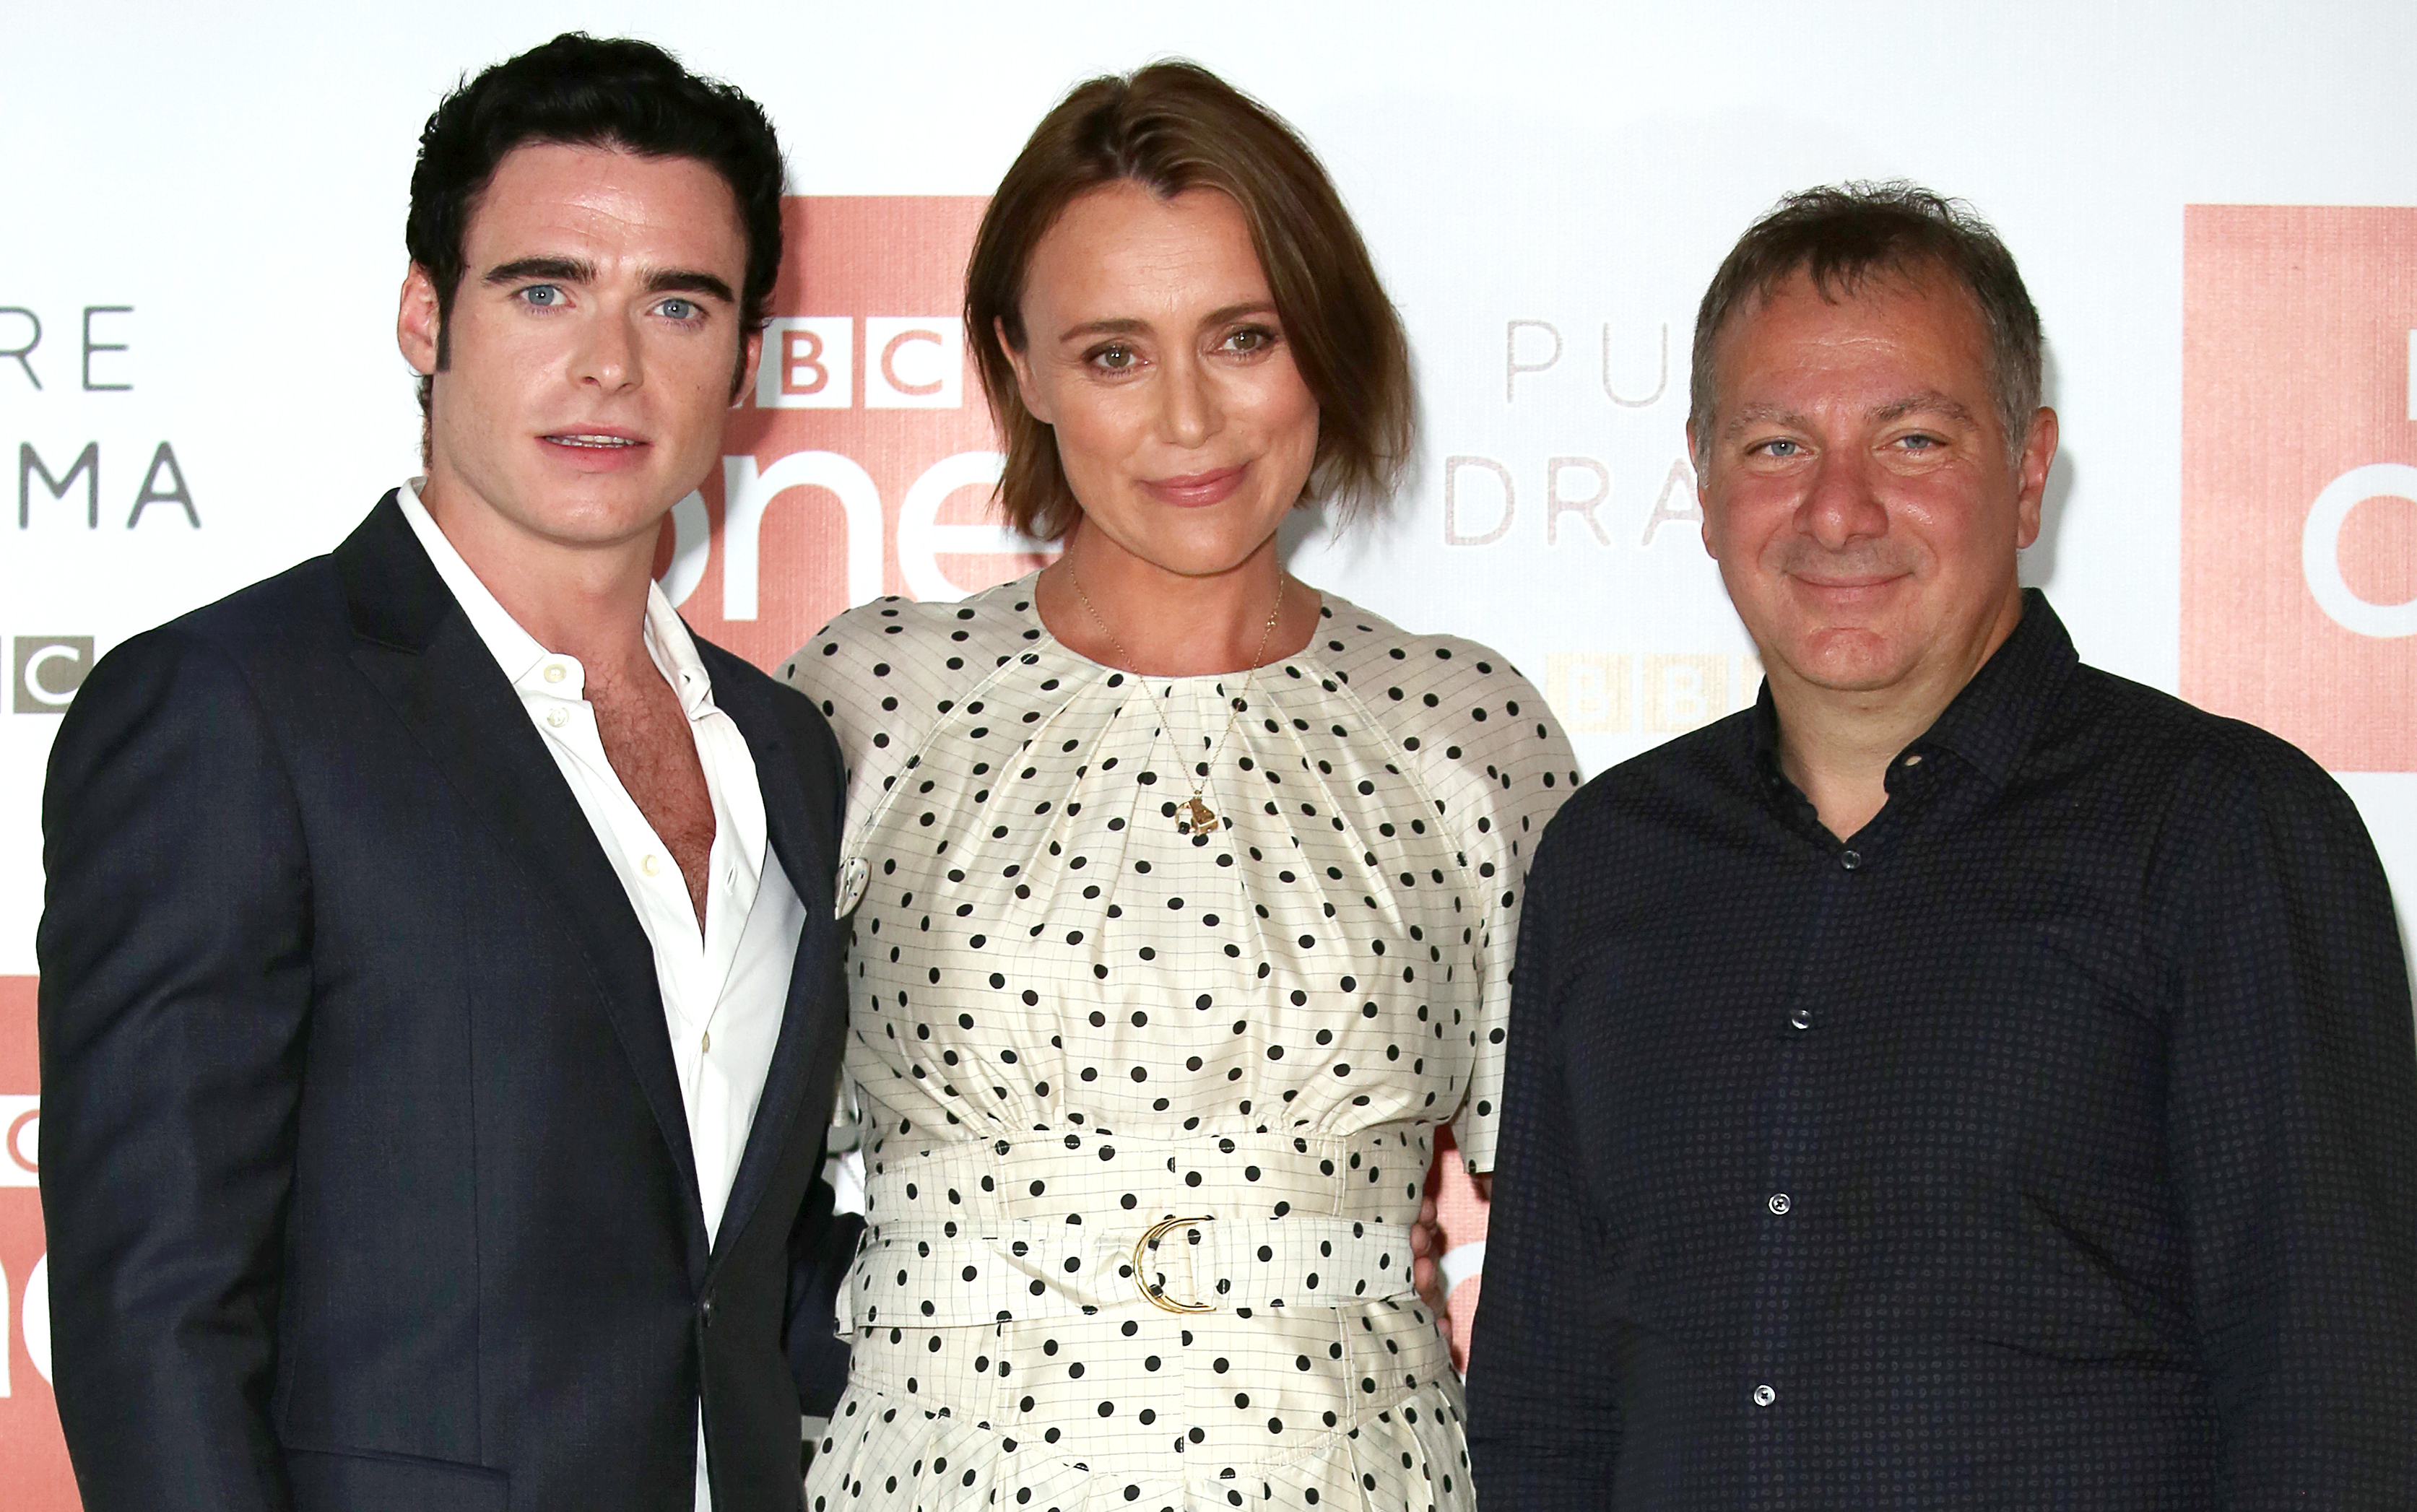 Bodyguard's Richard Madden, Keeley Hawes, and Jed Mercutio. Credit: PA